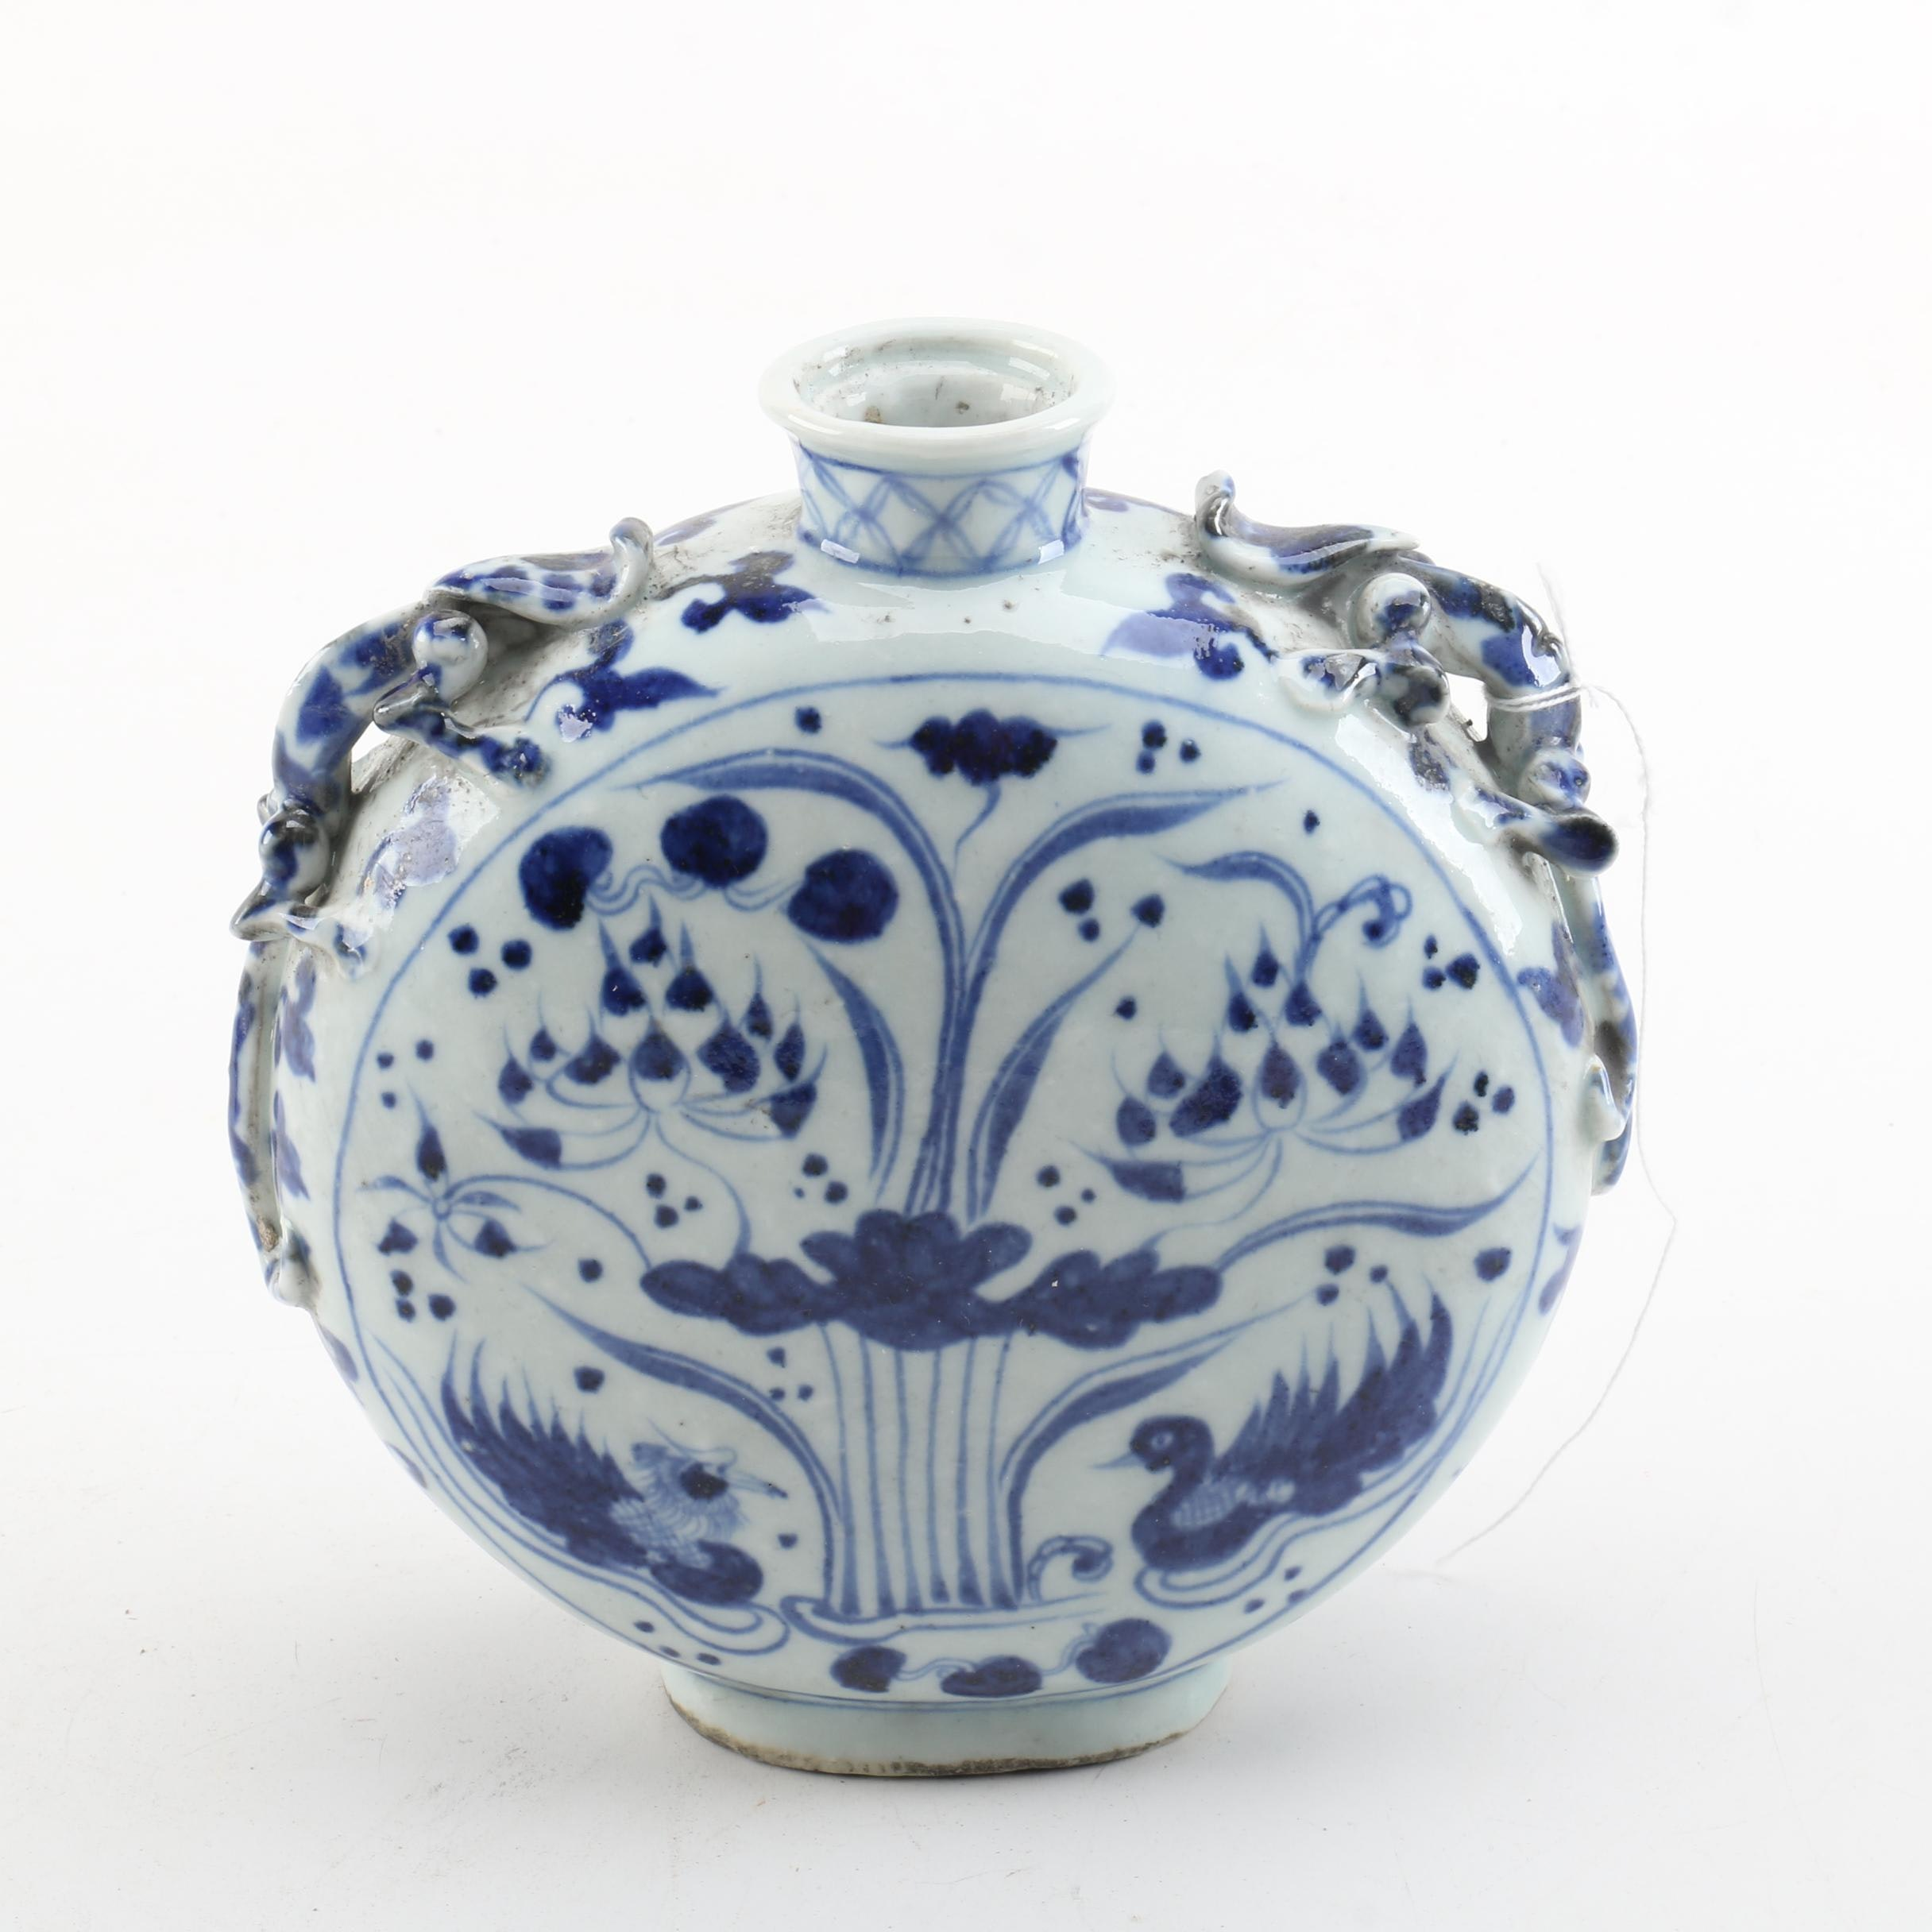 Chinese Moon Flask with Lizard Figural Handles